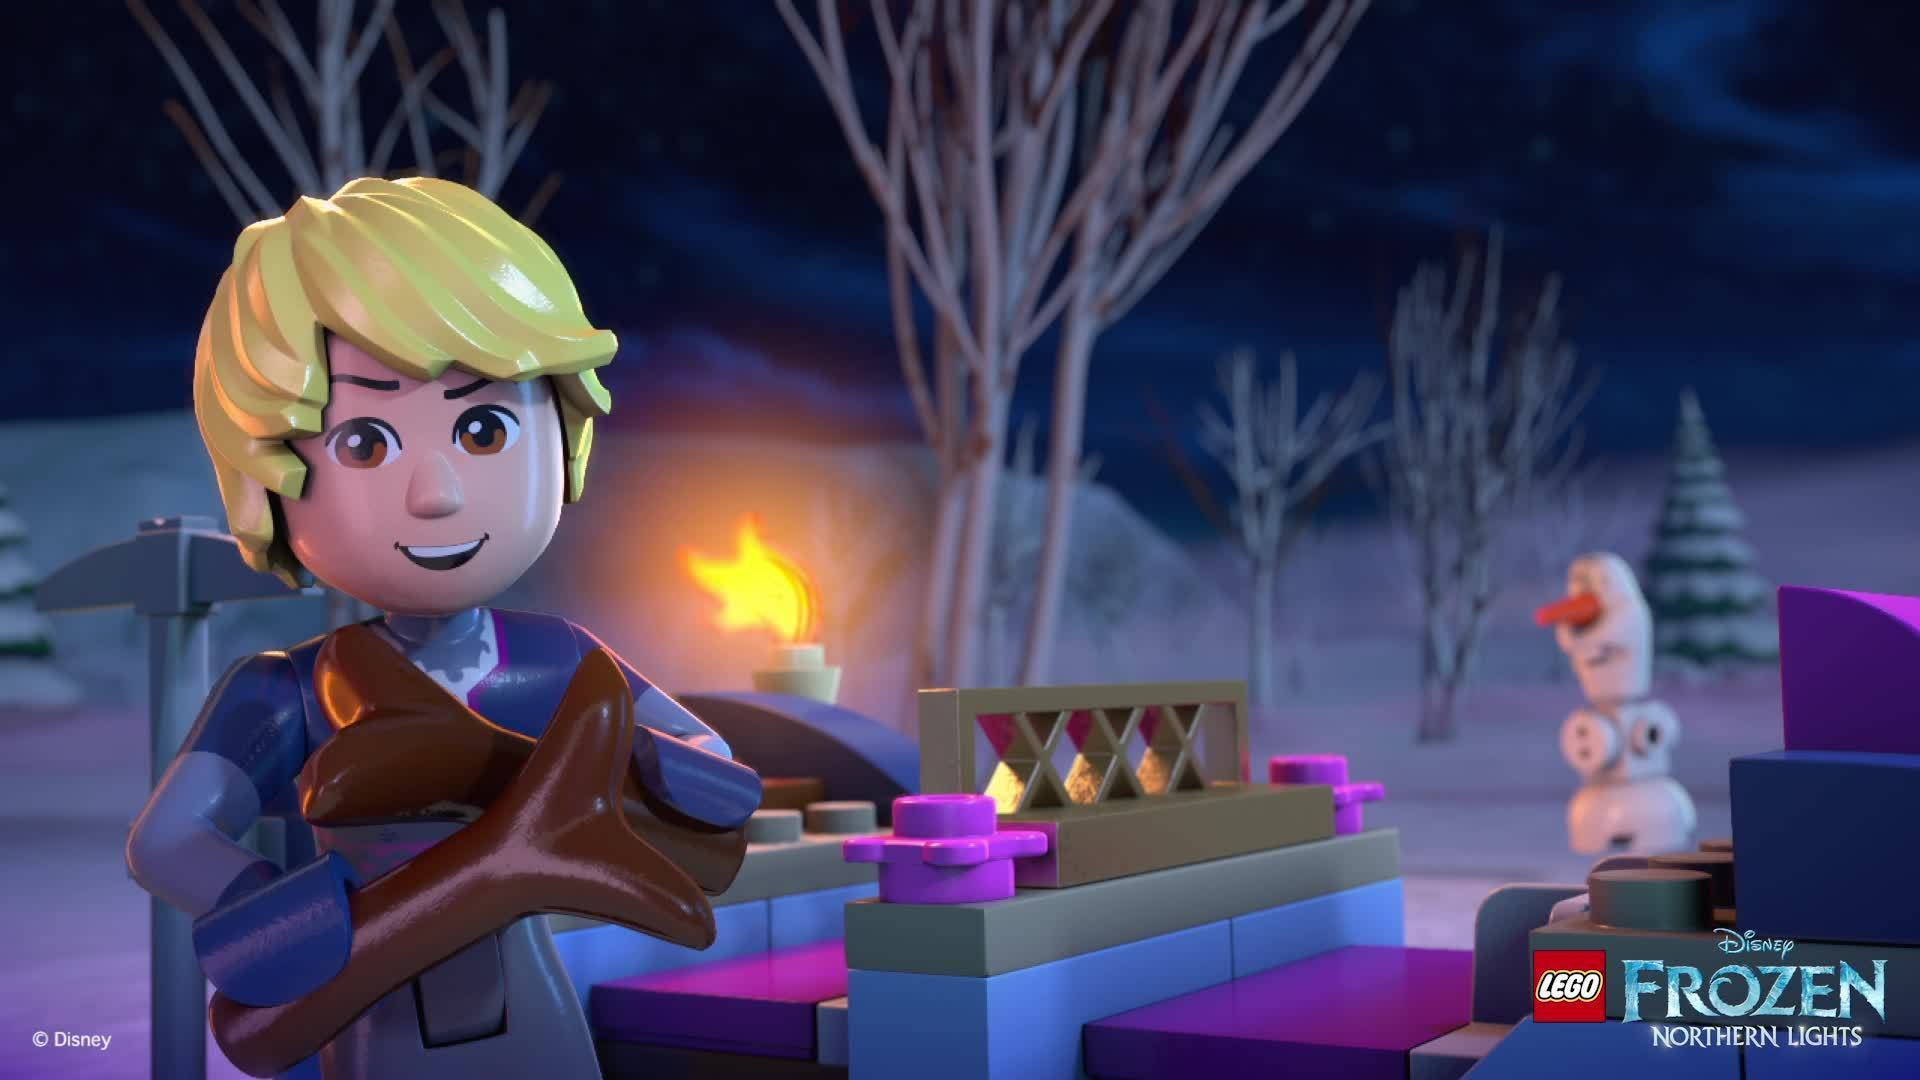 LEGO Disney Frozen Northern Lights – My Arms!